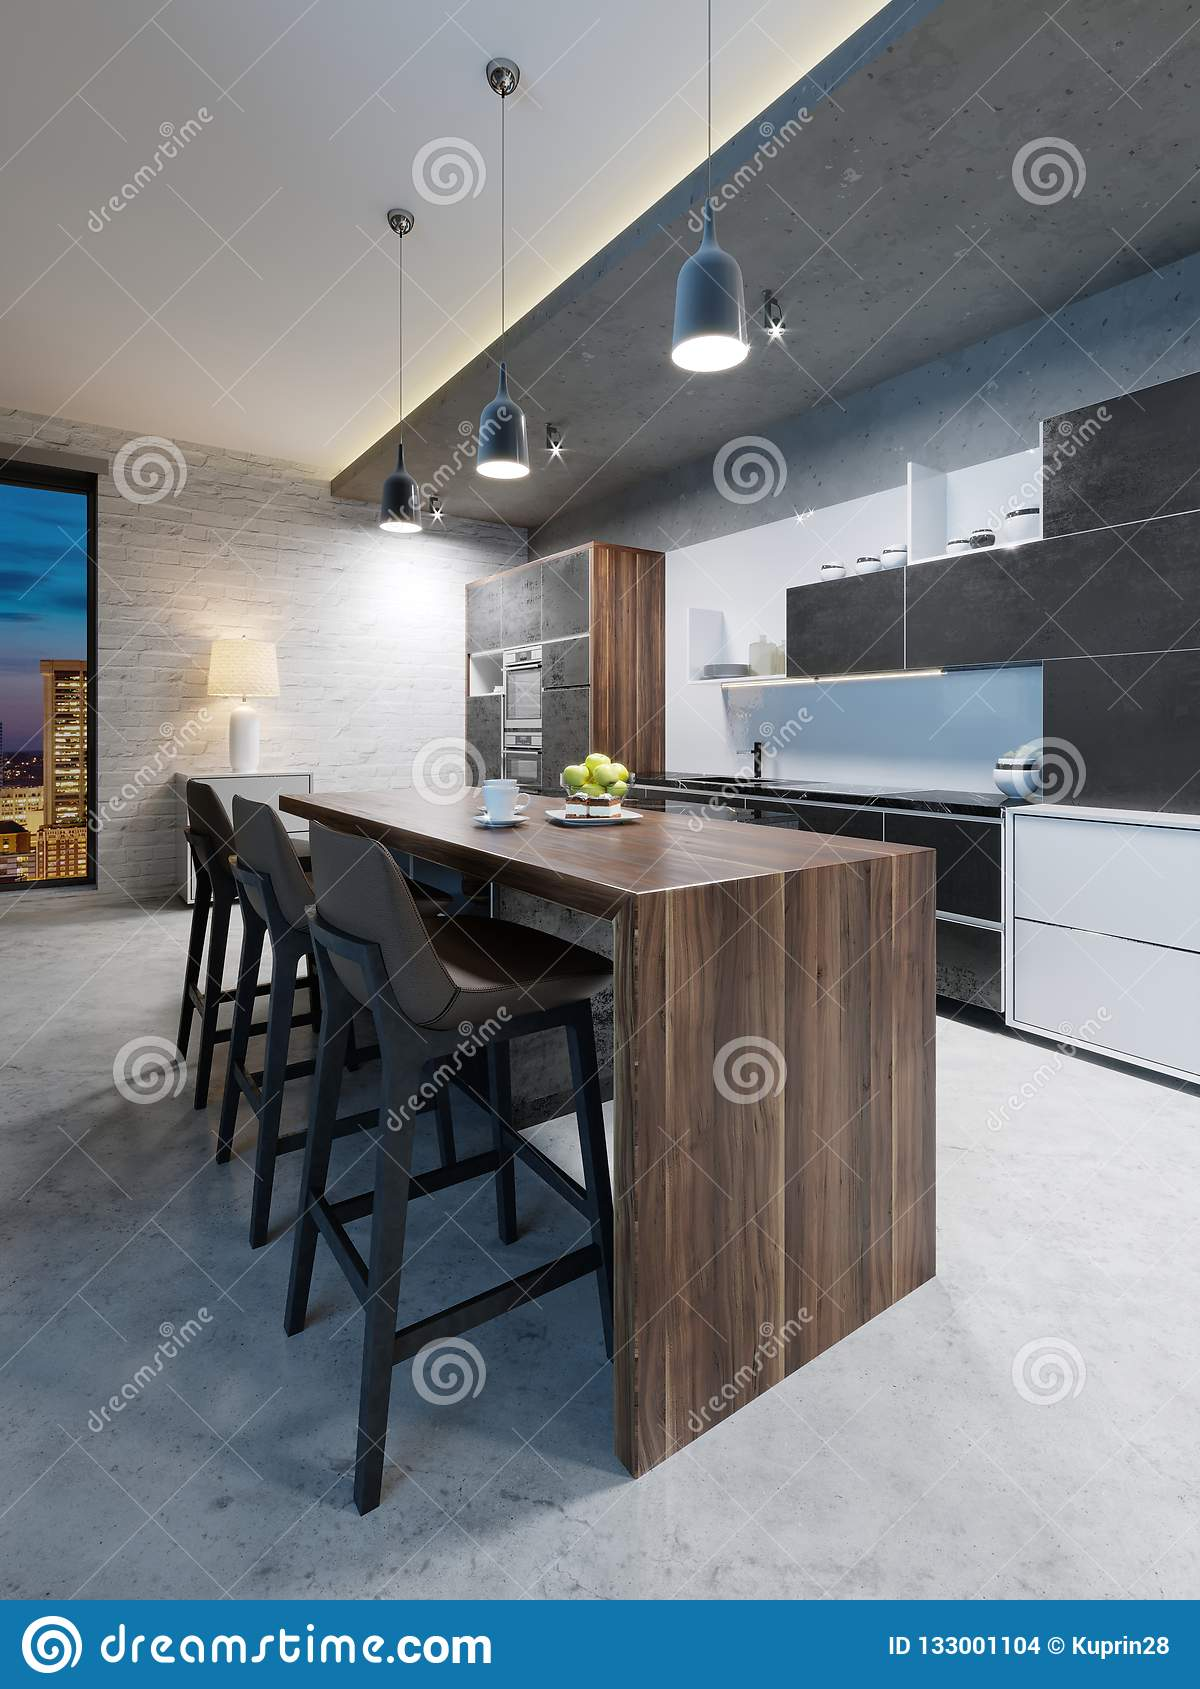 Picture of: Bar Counter With Chairs And A Kitchen Island In A Modern Kitchen Evening Lighting Stock Illustration Illustration Of Appliances Decorative 133001104